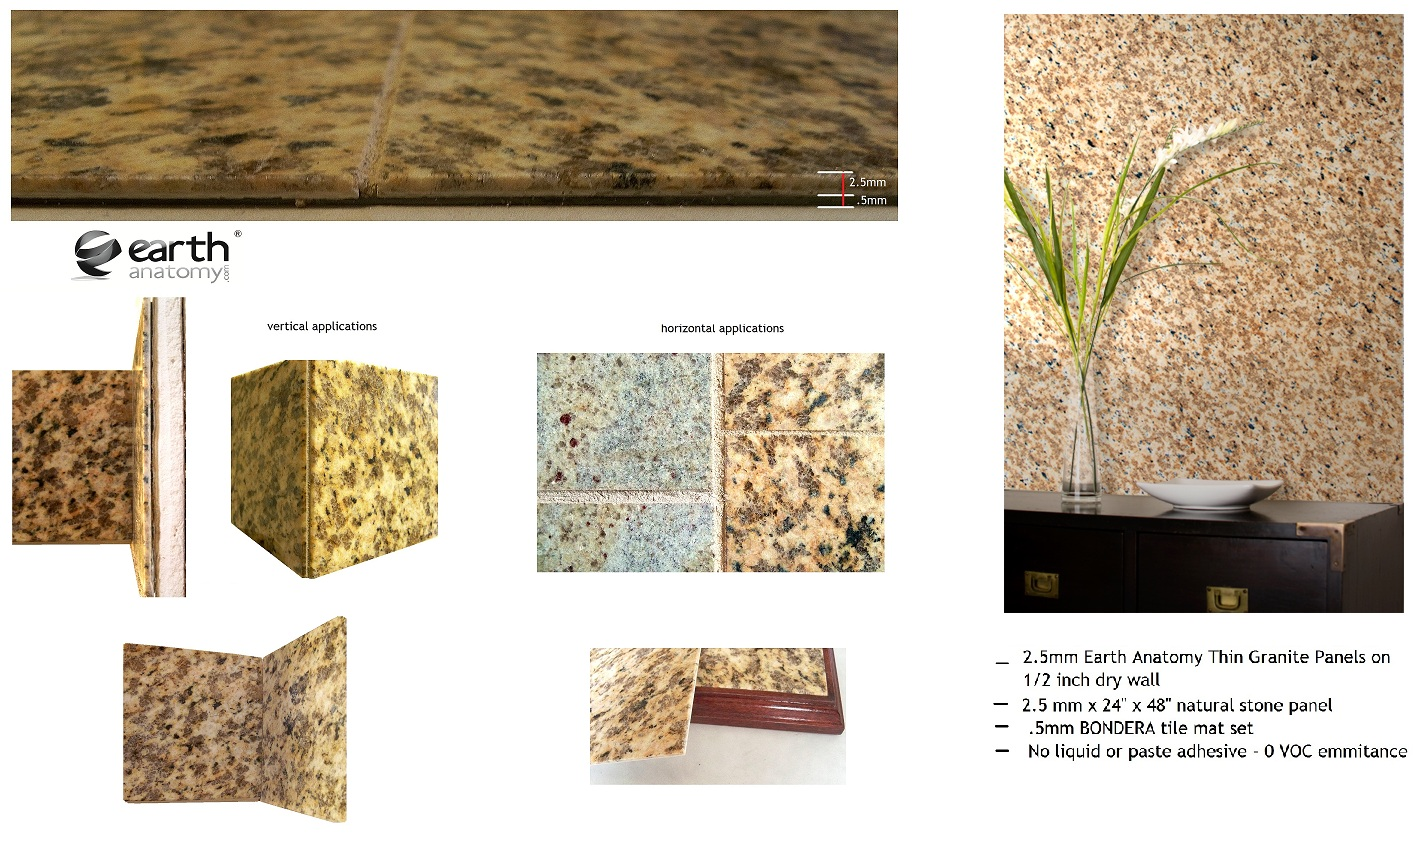 Grizzly Partners, LLC home of EARTH ANATOMY ULTRA THIN GRANITE Main Image